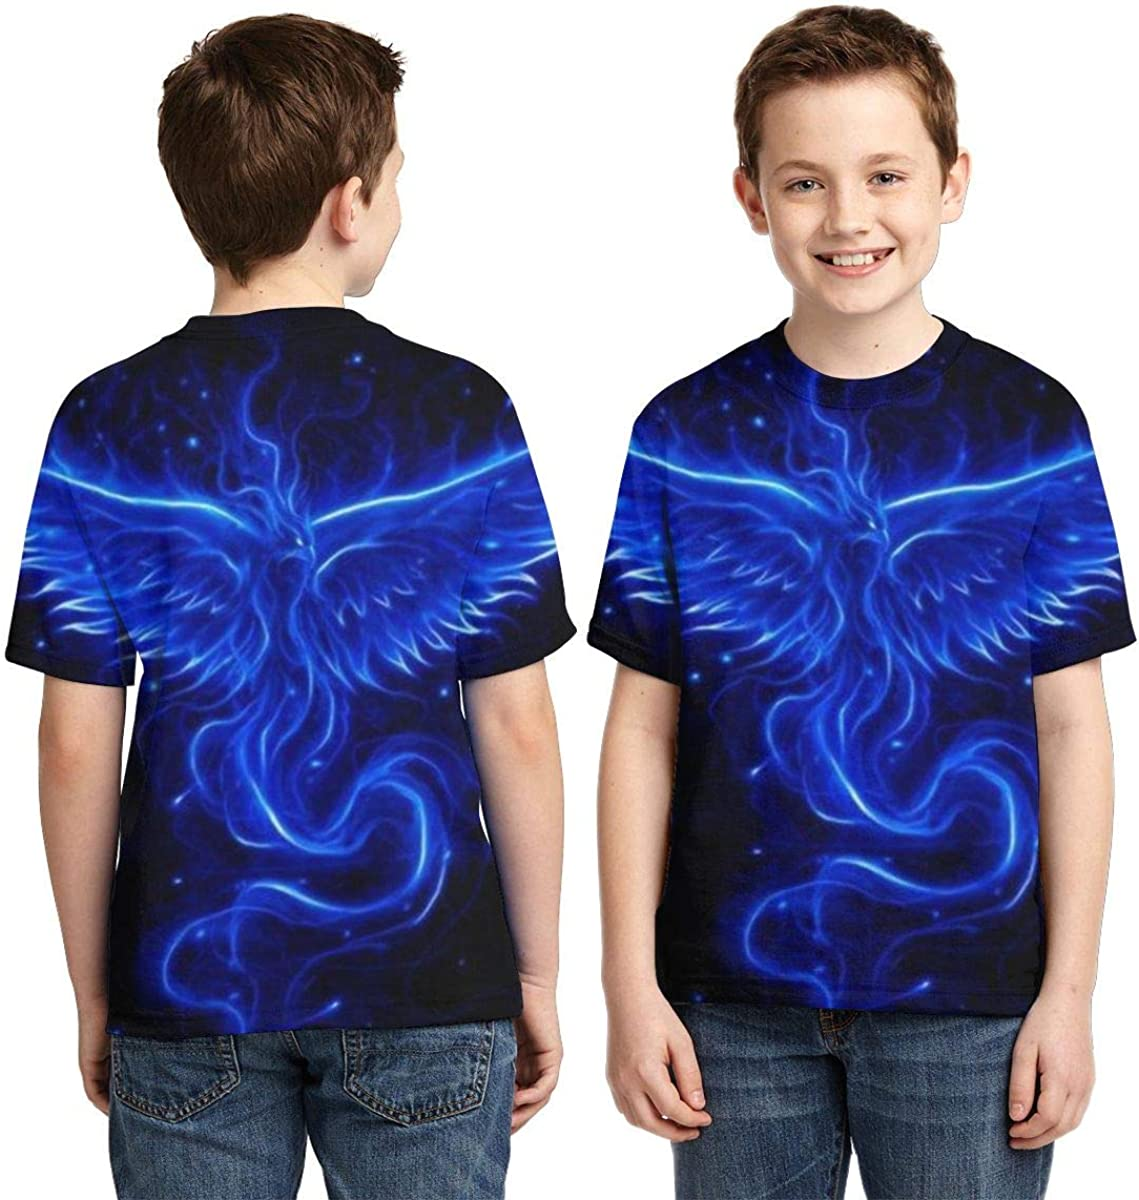 Youth T-Shirts Summer Tops for Boys Cool Blue Phoenix Full Printed Short Sleeve Crew Neck Tees